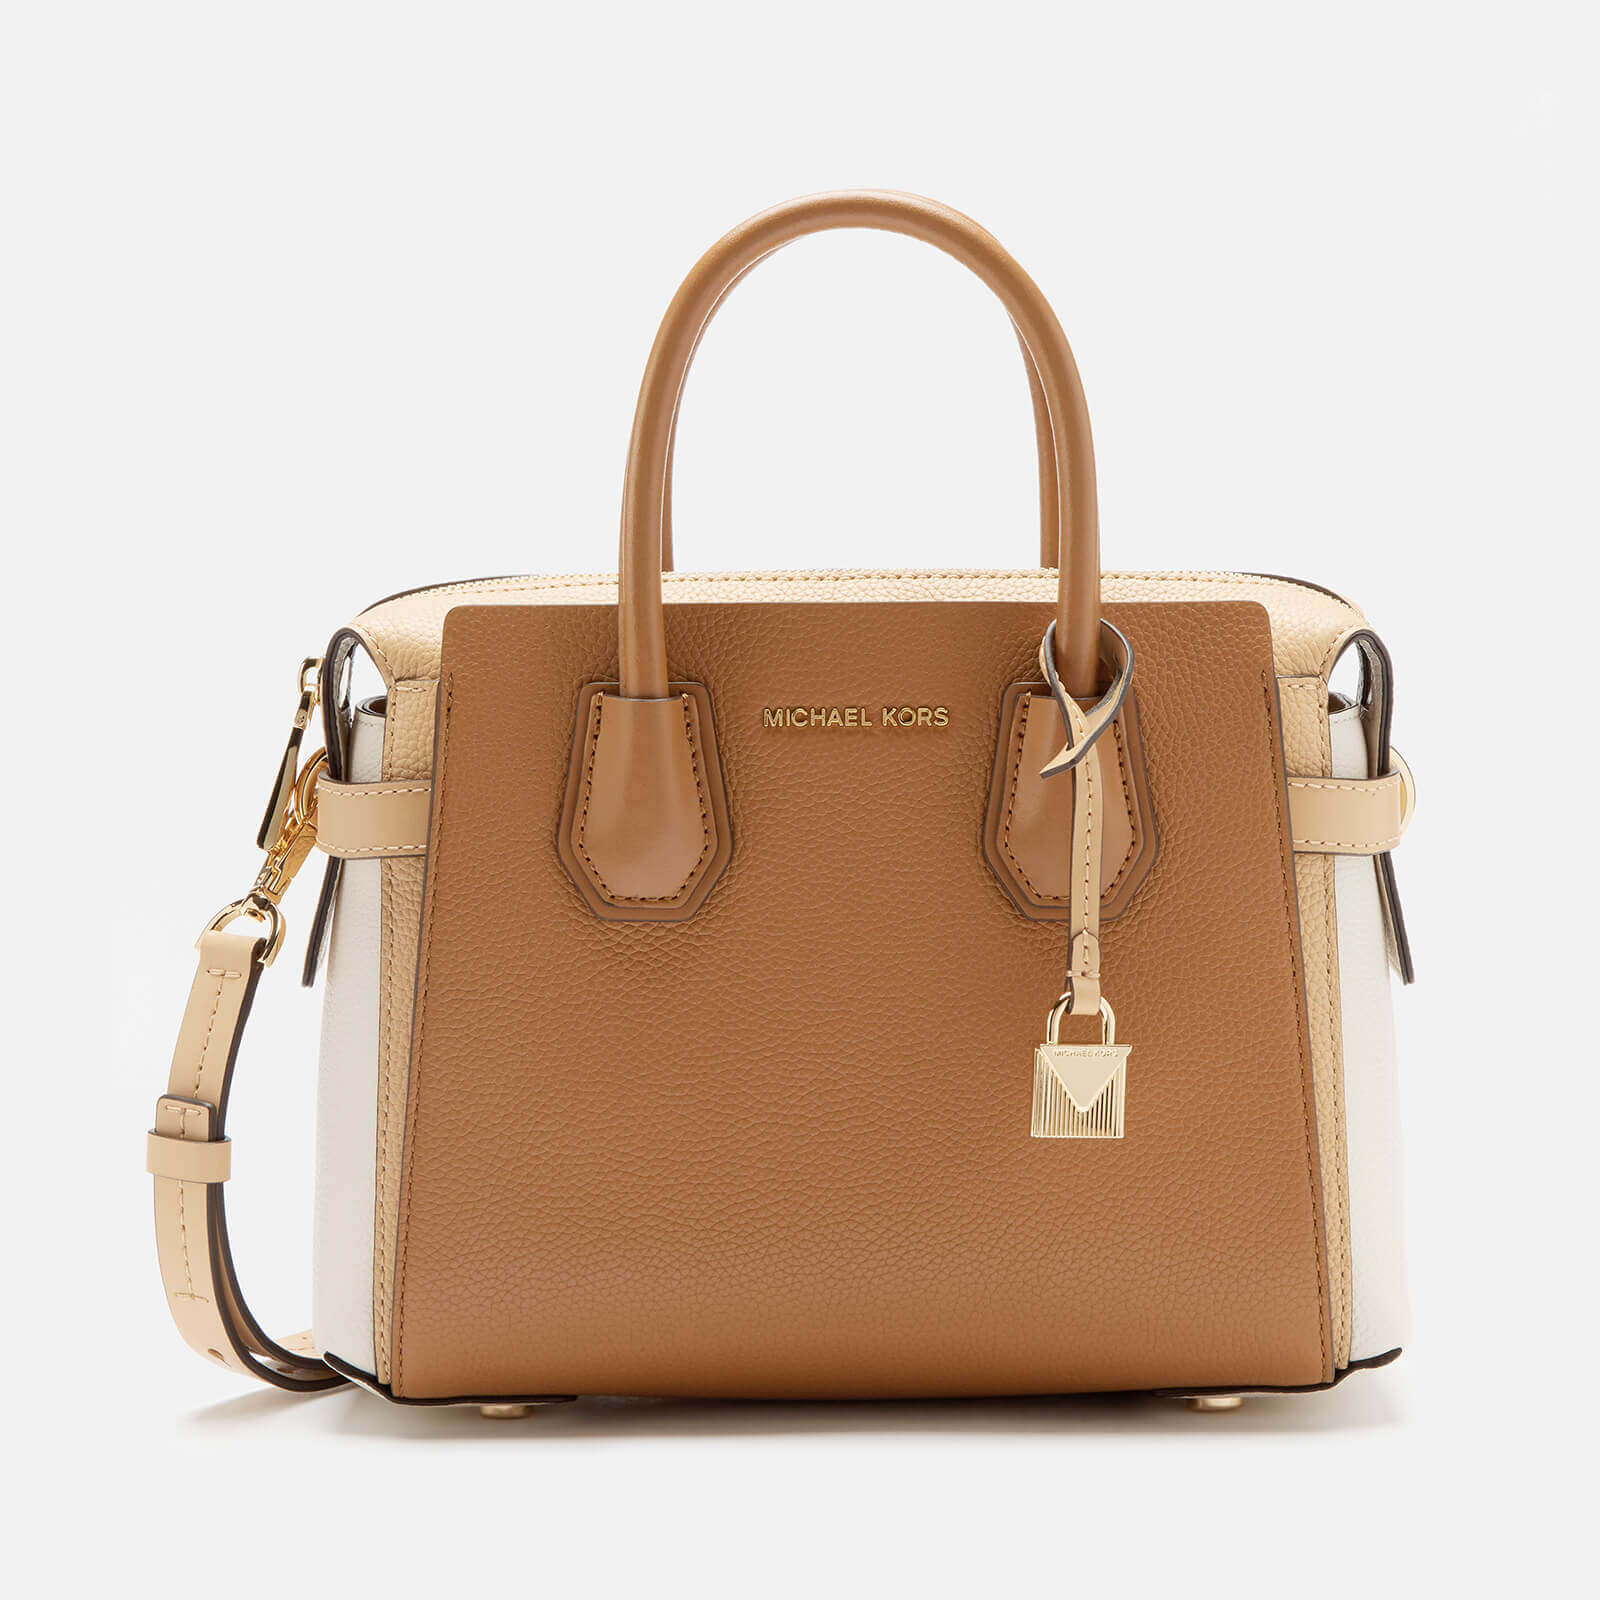 f5be366e2 MICHAEL MICHAEL KORS Women's Mercer Belted Small Satchel Bag - Btrn/Ltc/Acr  - Free UK Delivery over £50